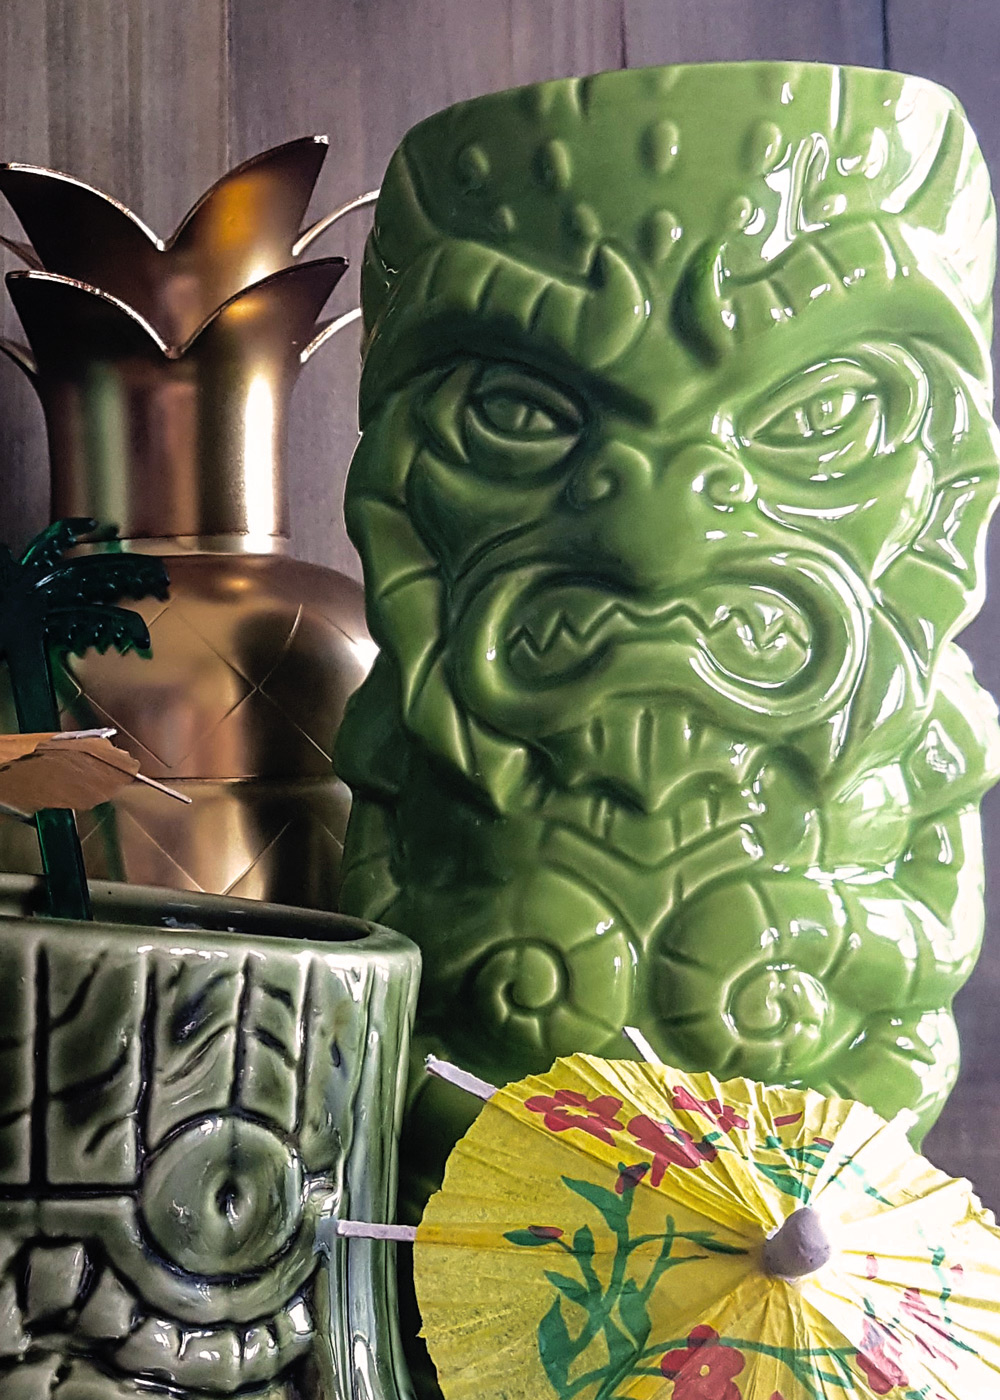 A close-up of a ceramic tiki mug in the shape of a kraken.